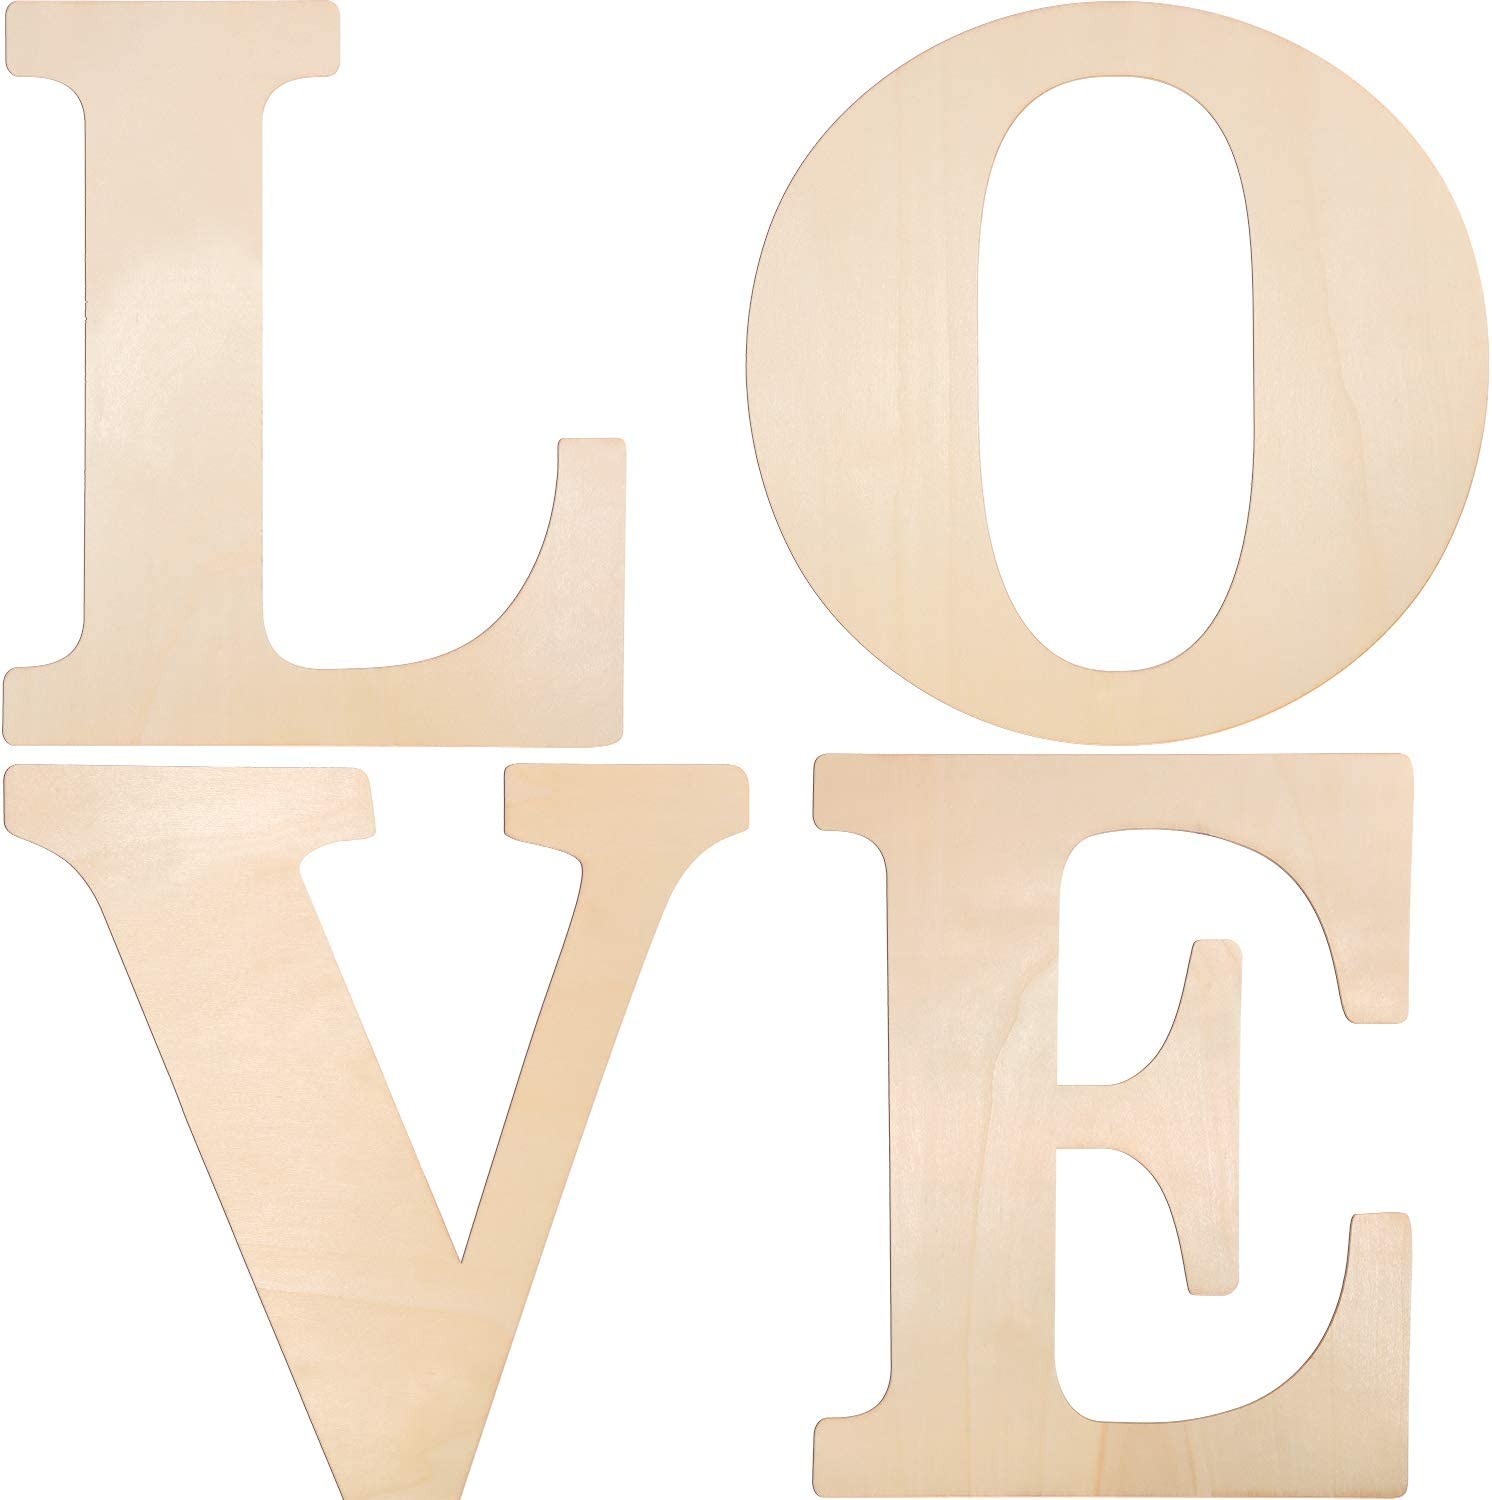 4 Pieces 12 Inches Unfinished Wooden Letters Love Wood Letters Wooden Home Wedding Decoration Letters Wooden Block Cutout Letters